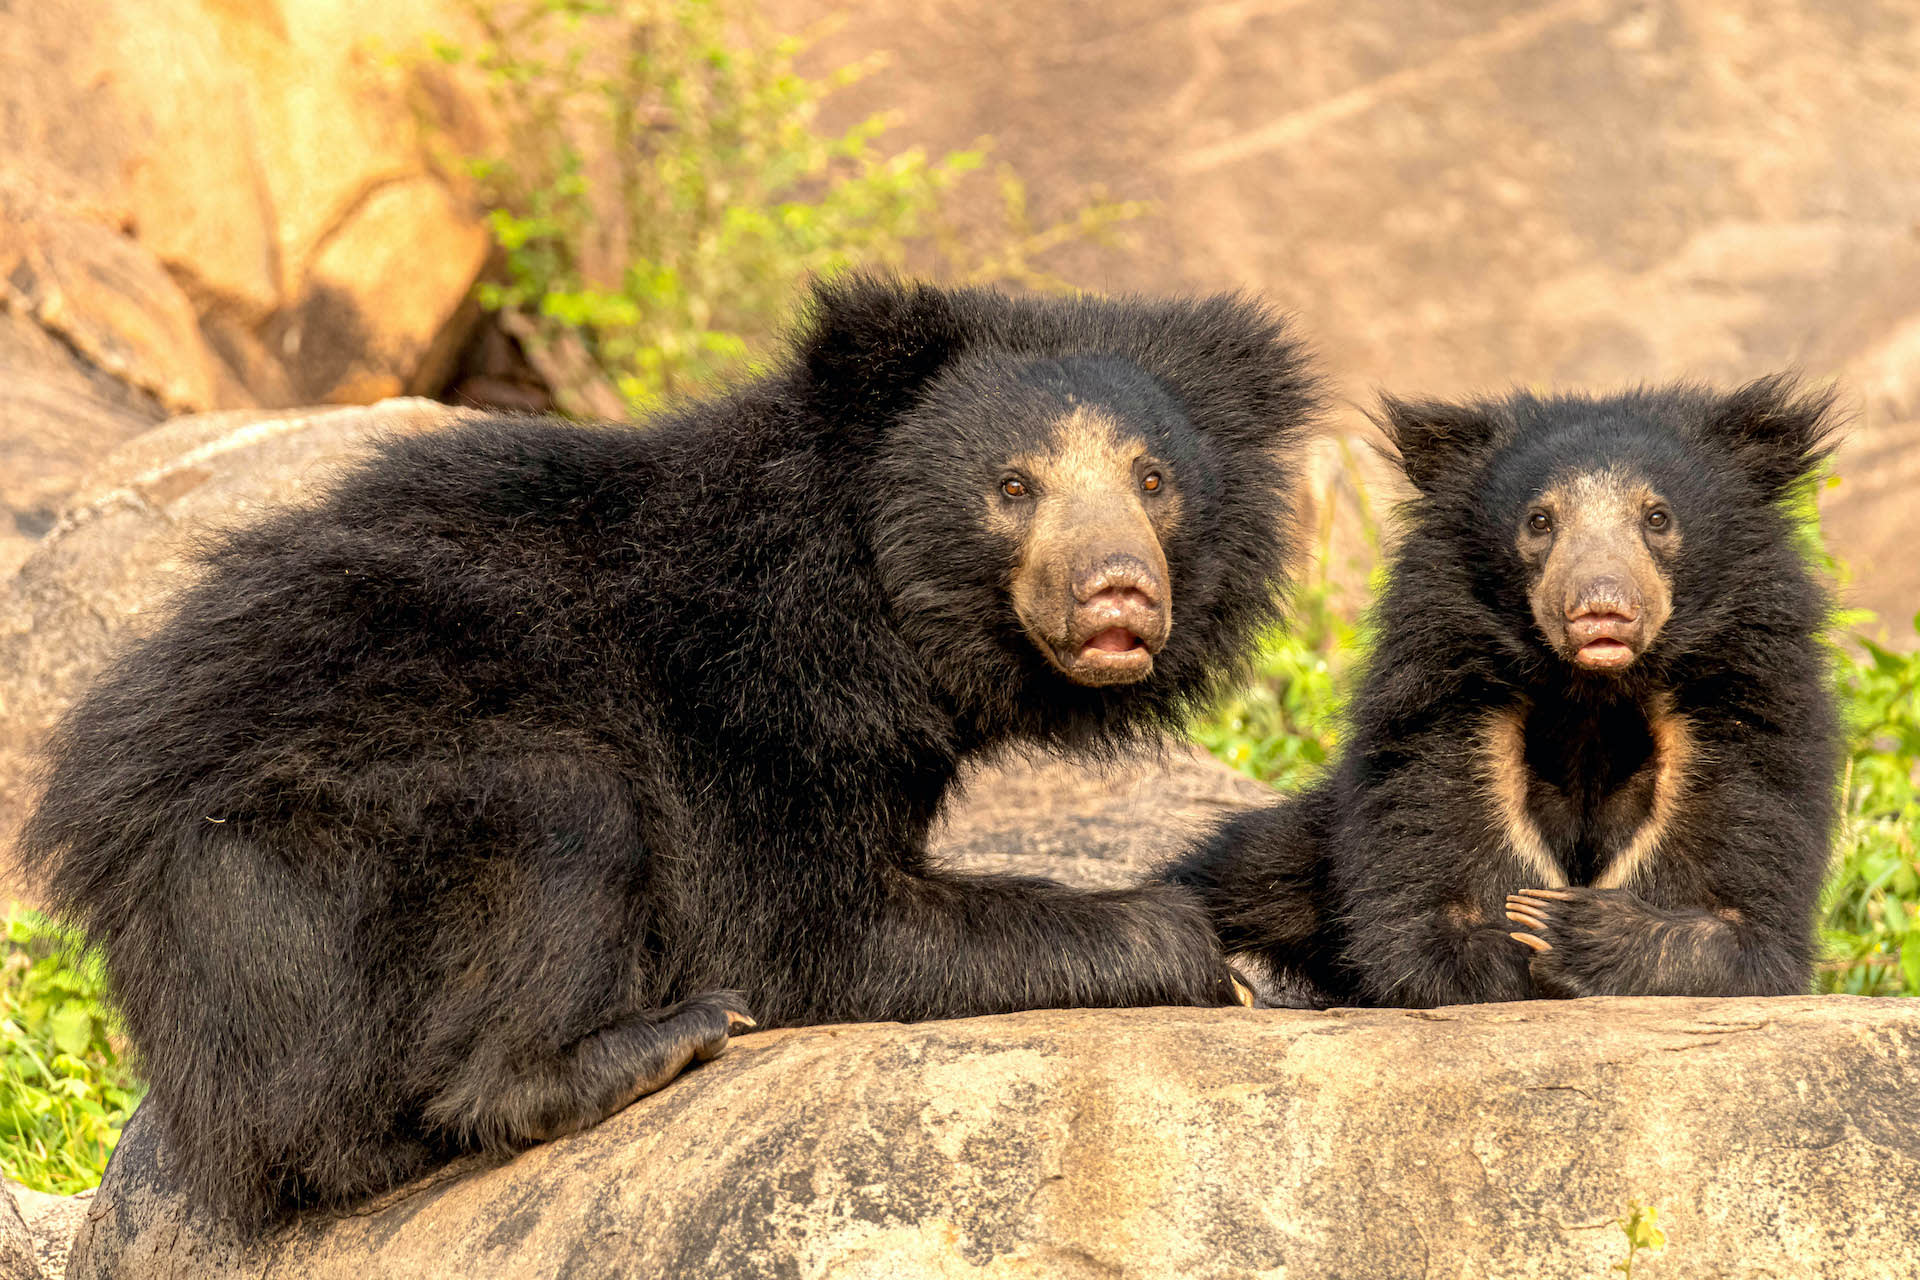 Bare Truth: Why We Need to Save Our Sloth Bears